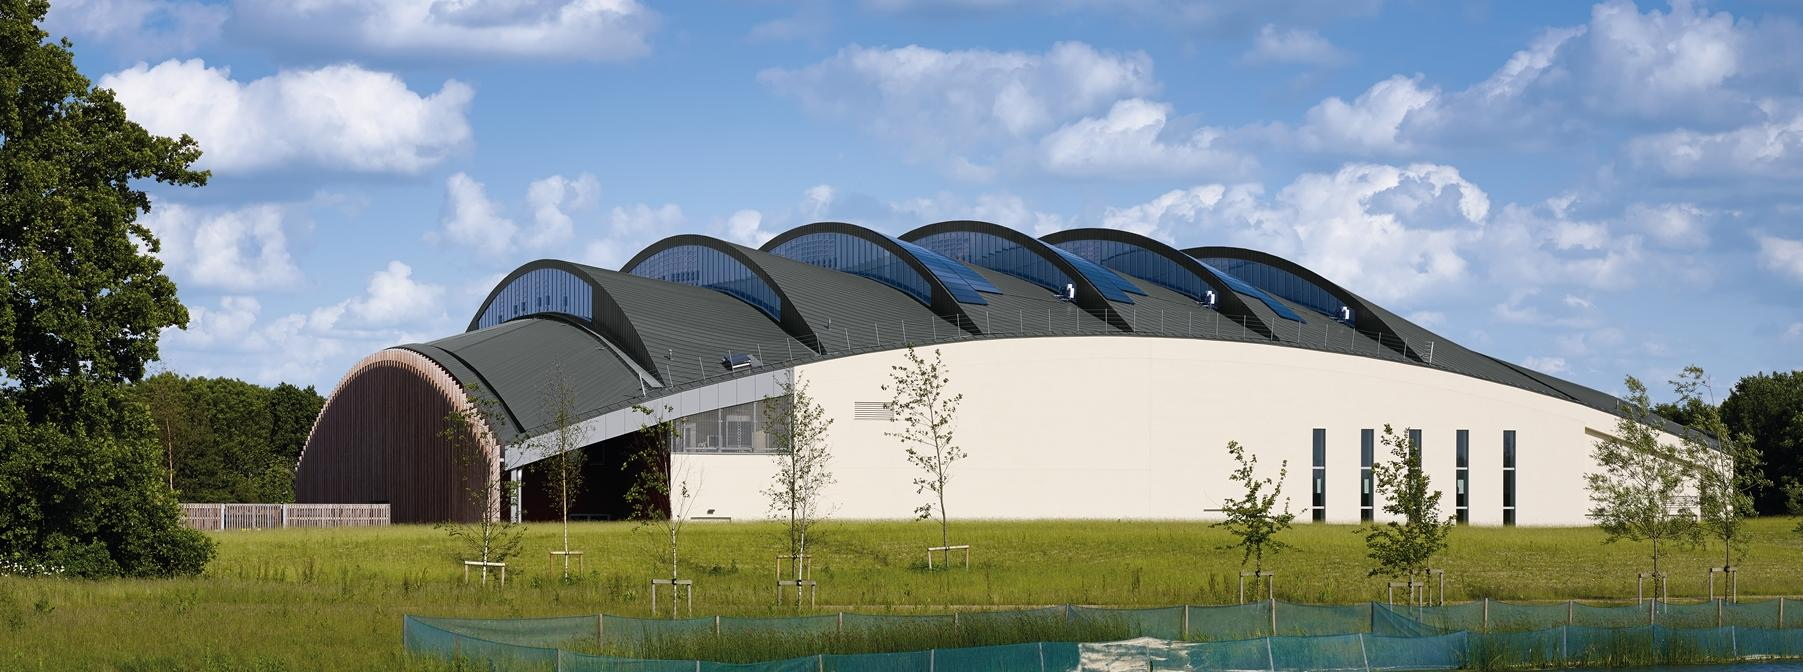 Cambridge University Sports Centre met zinken dak in dubbele staande fels